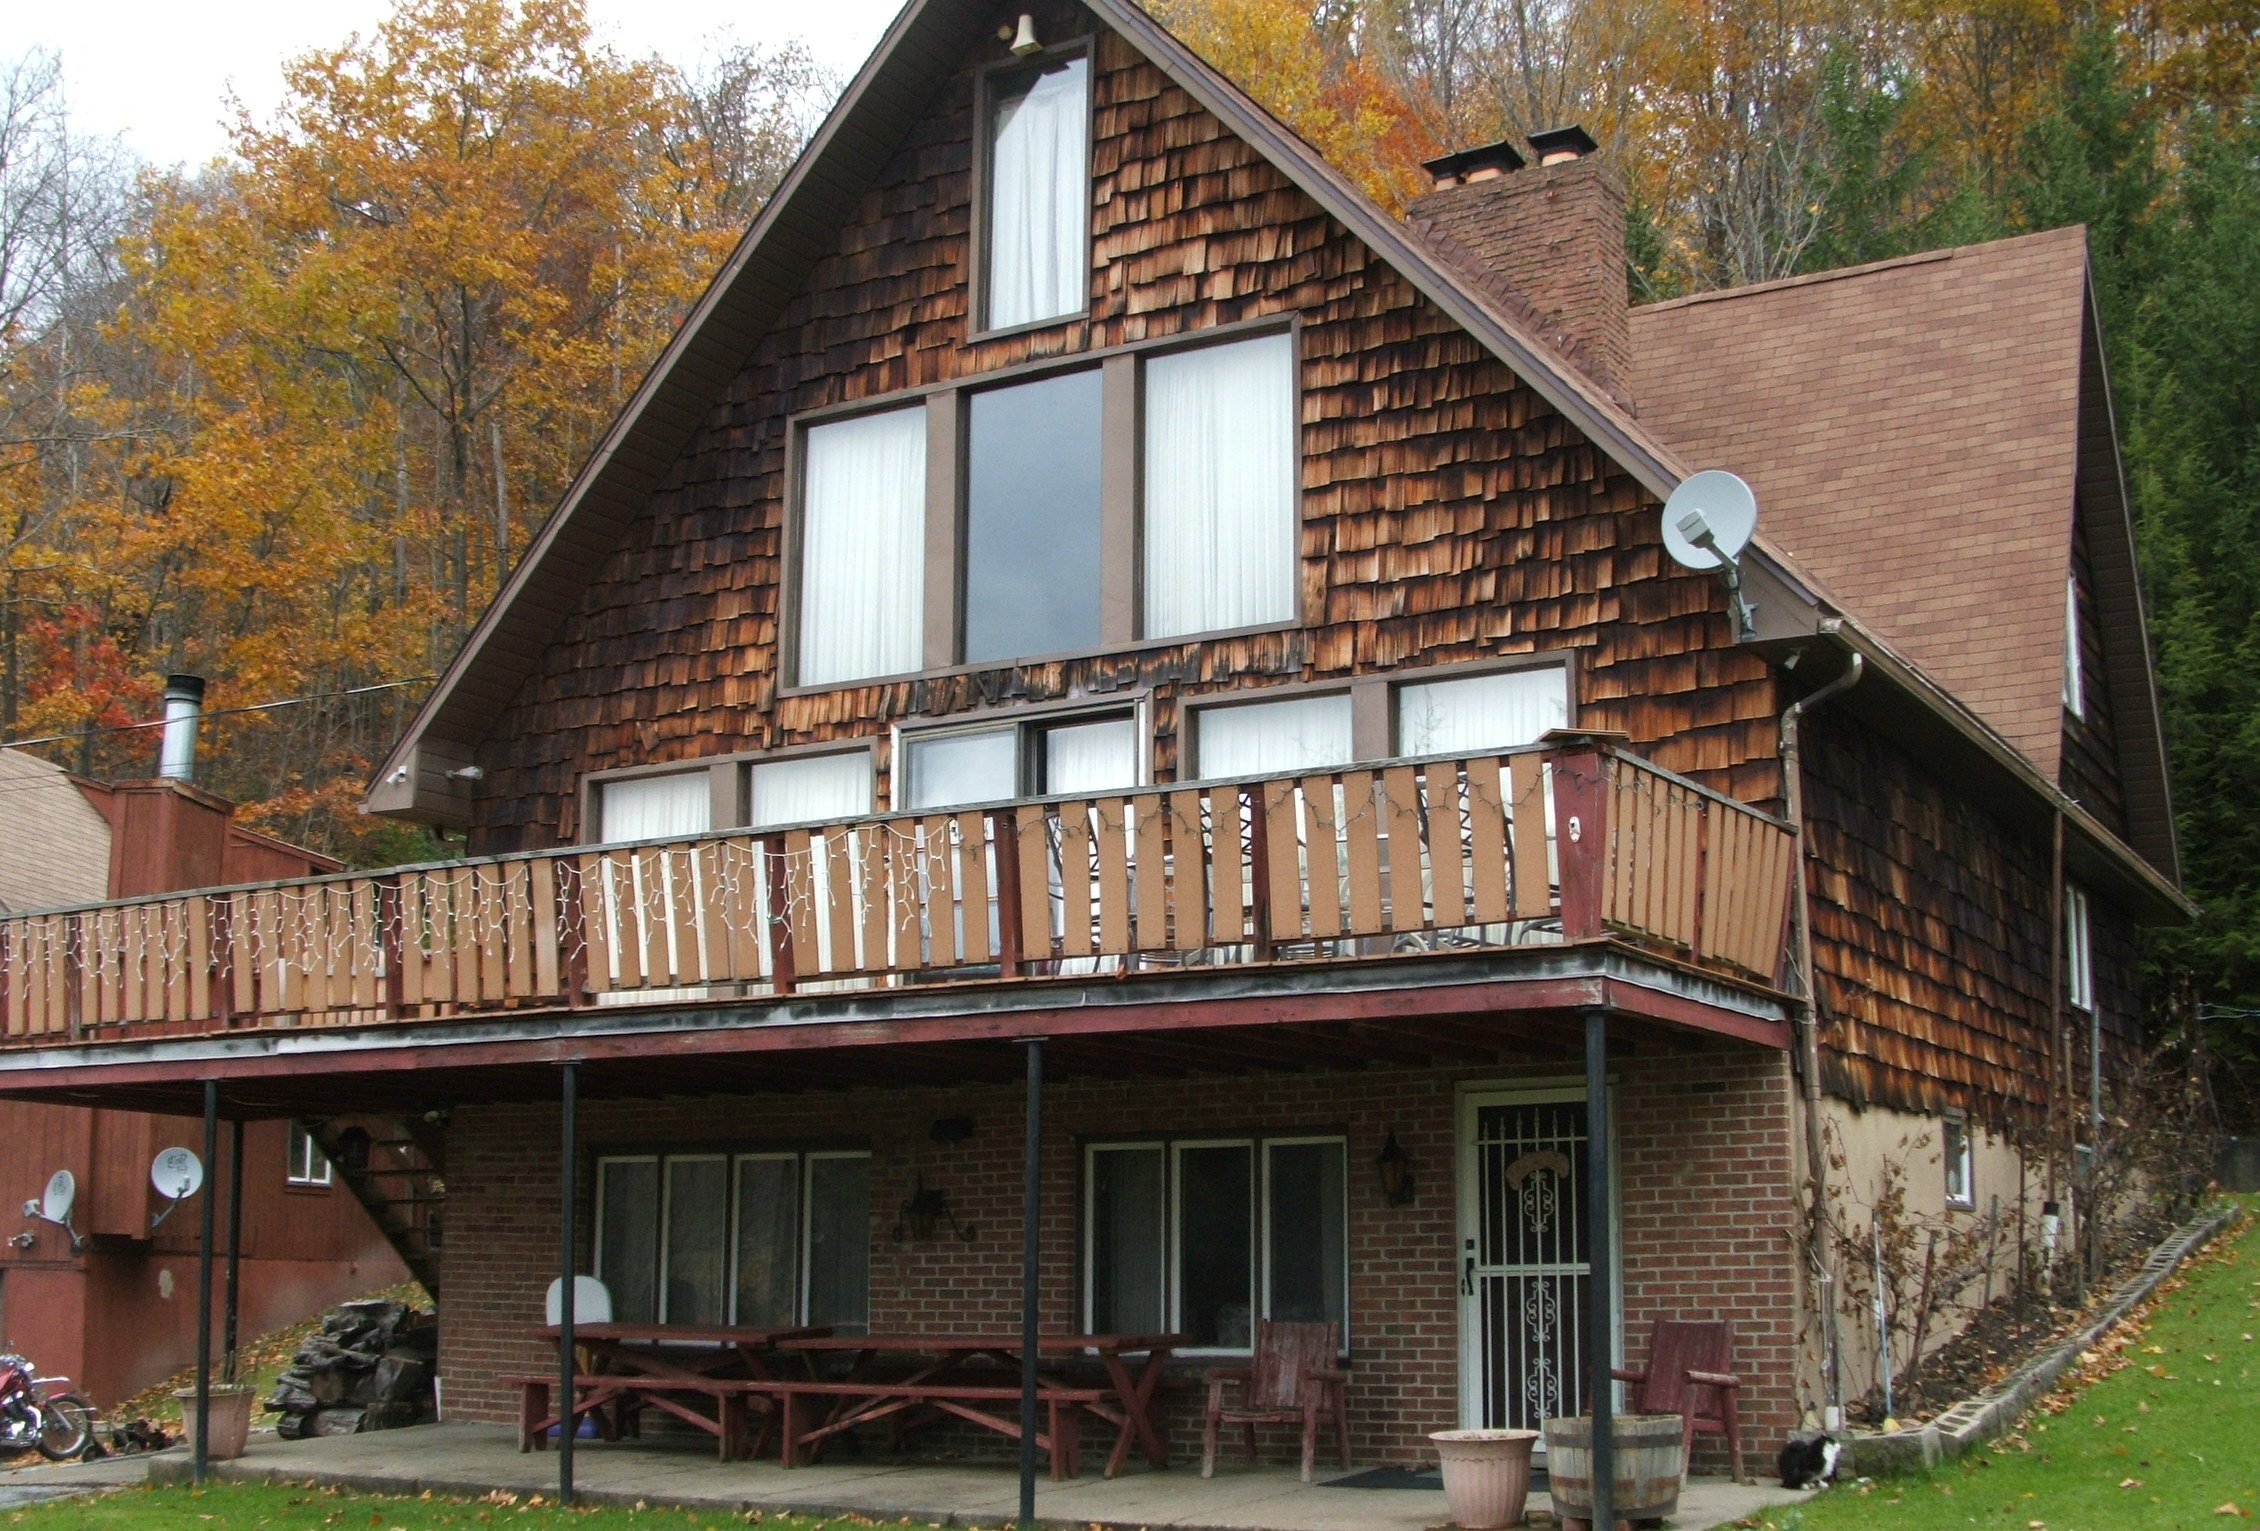 The Sugar Chalet in Ellicottville